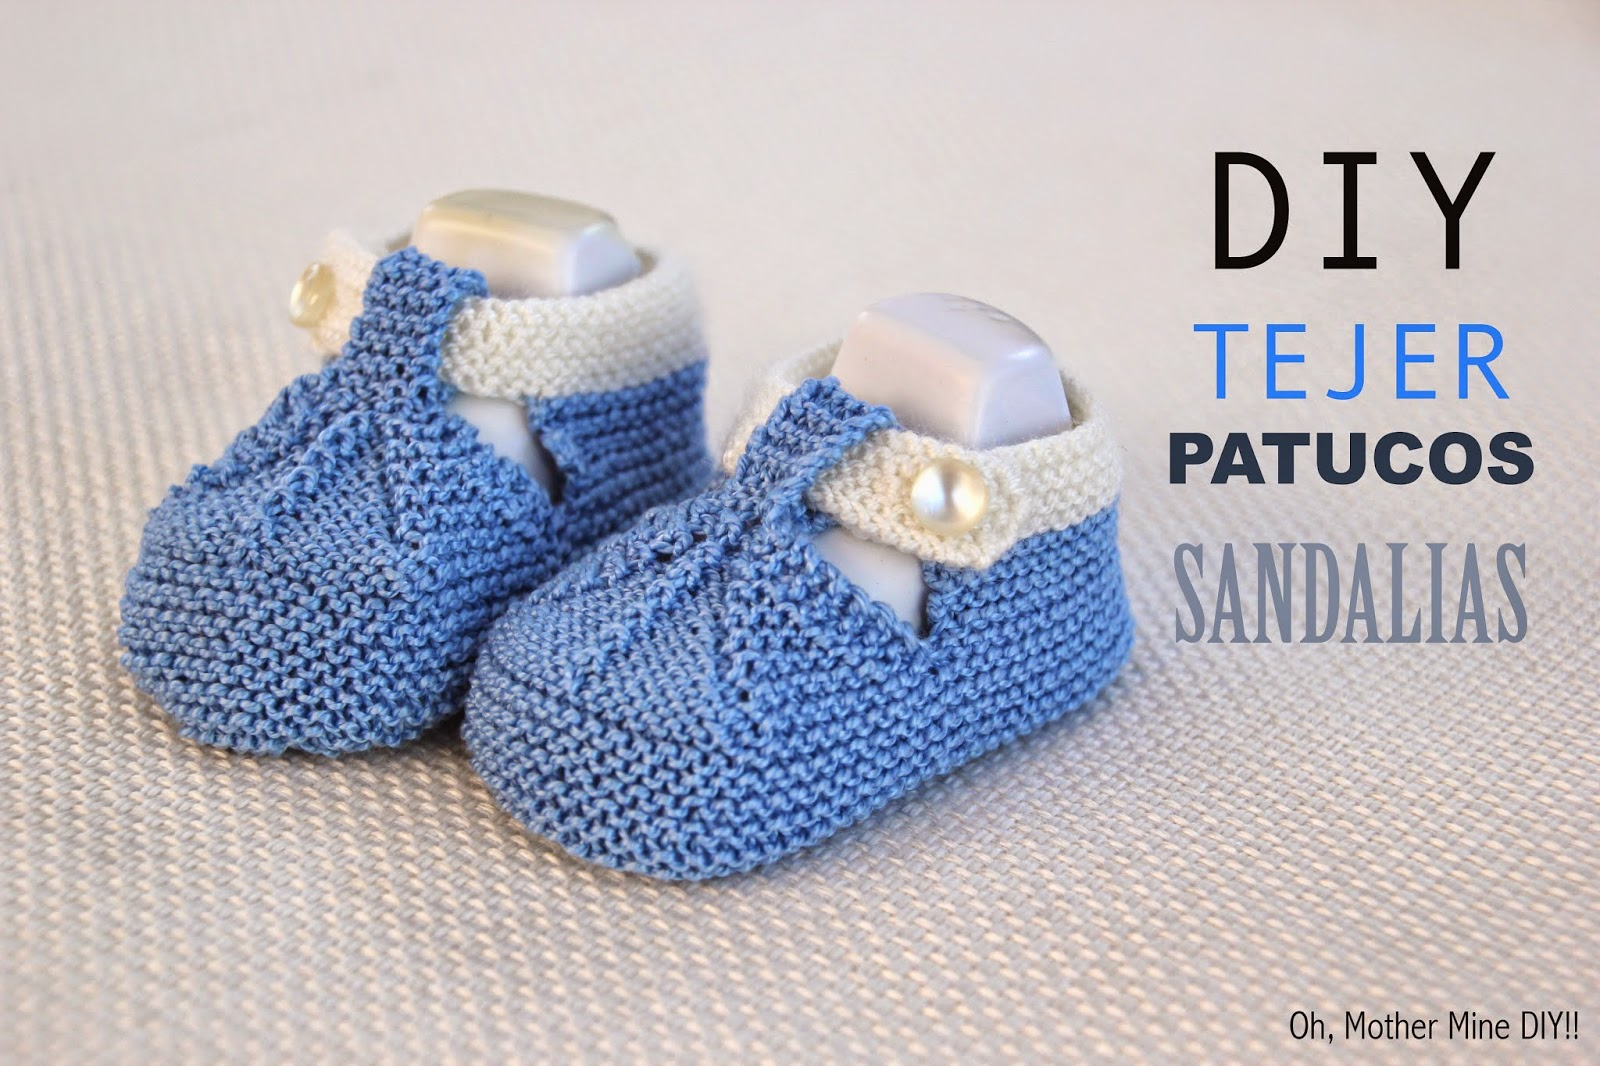 6 PATRONES GRATIS DE PATUCOS DE BEBE DIY - Handbox Craft Lovers ...